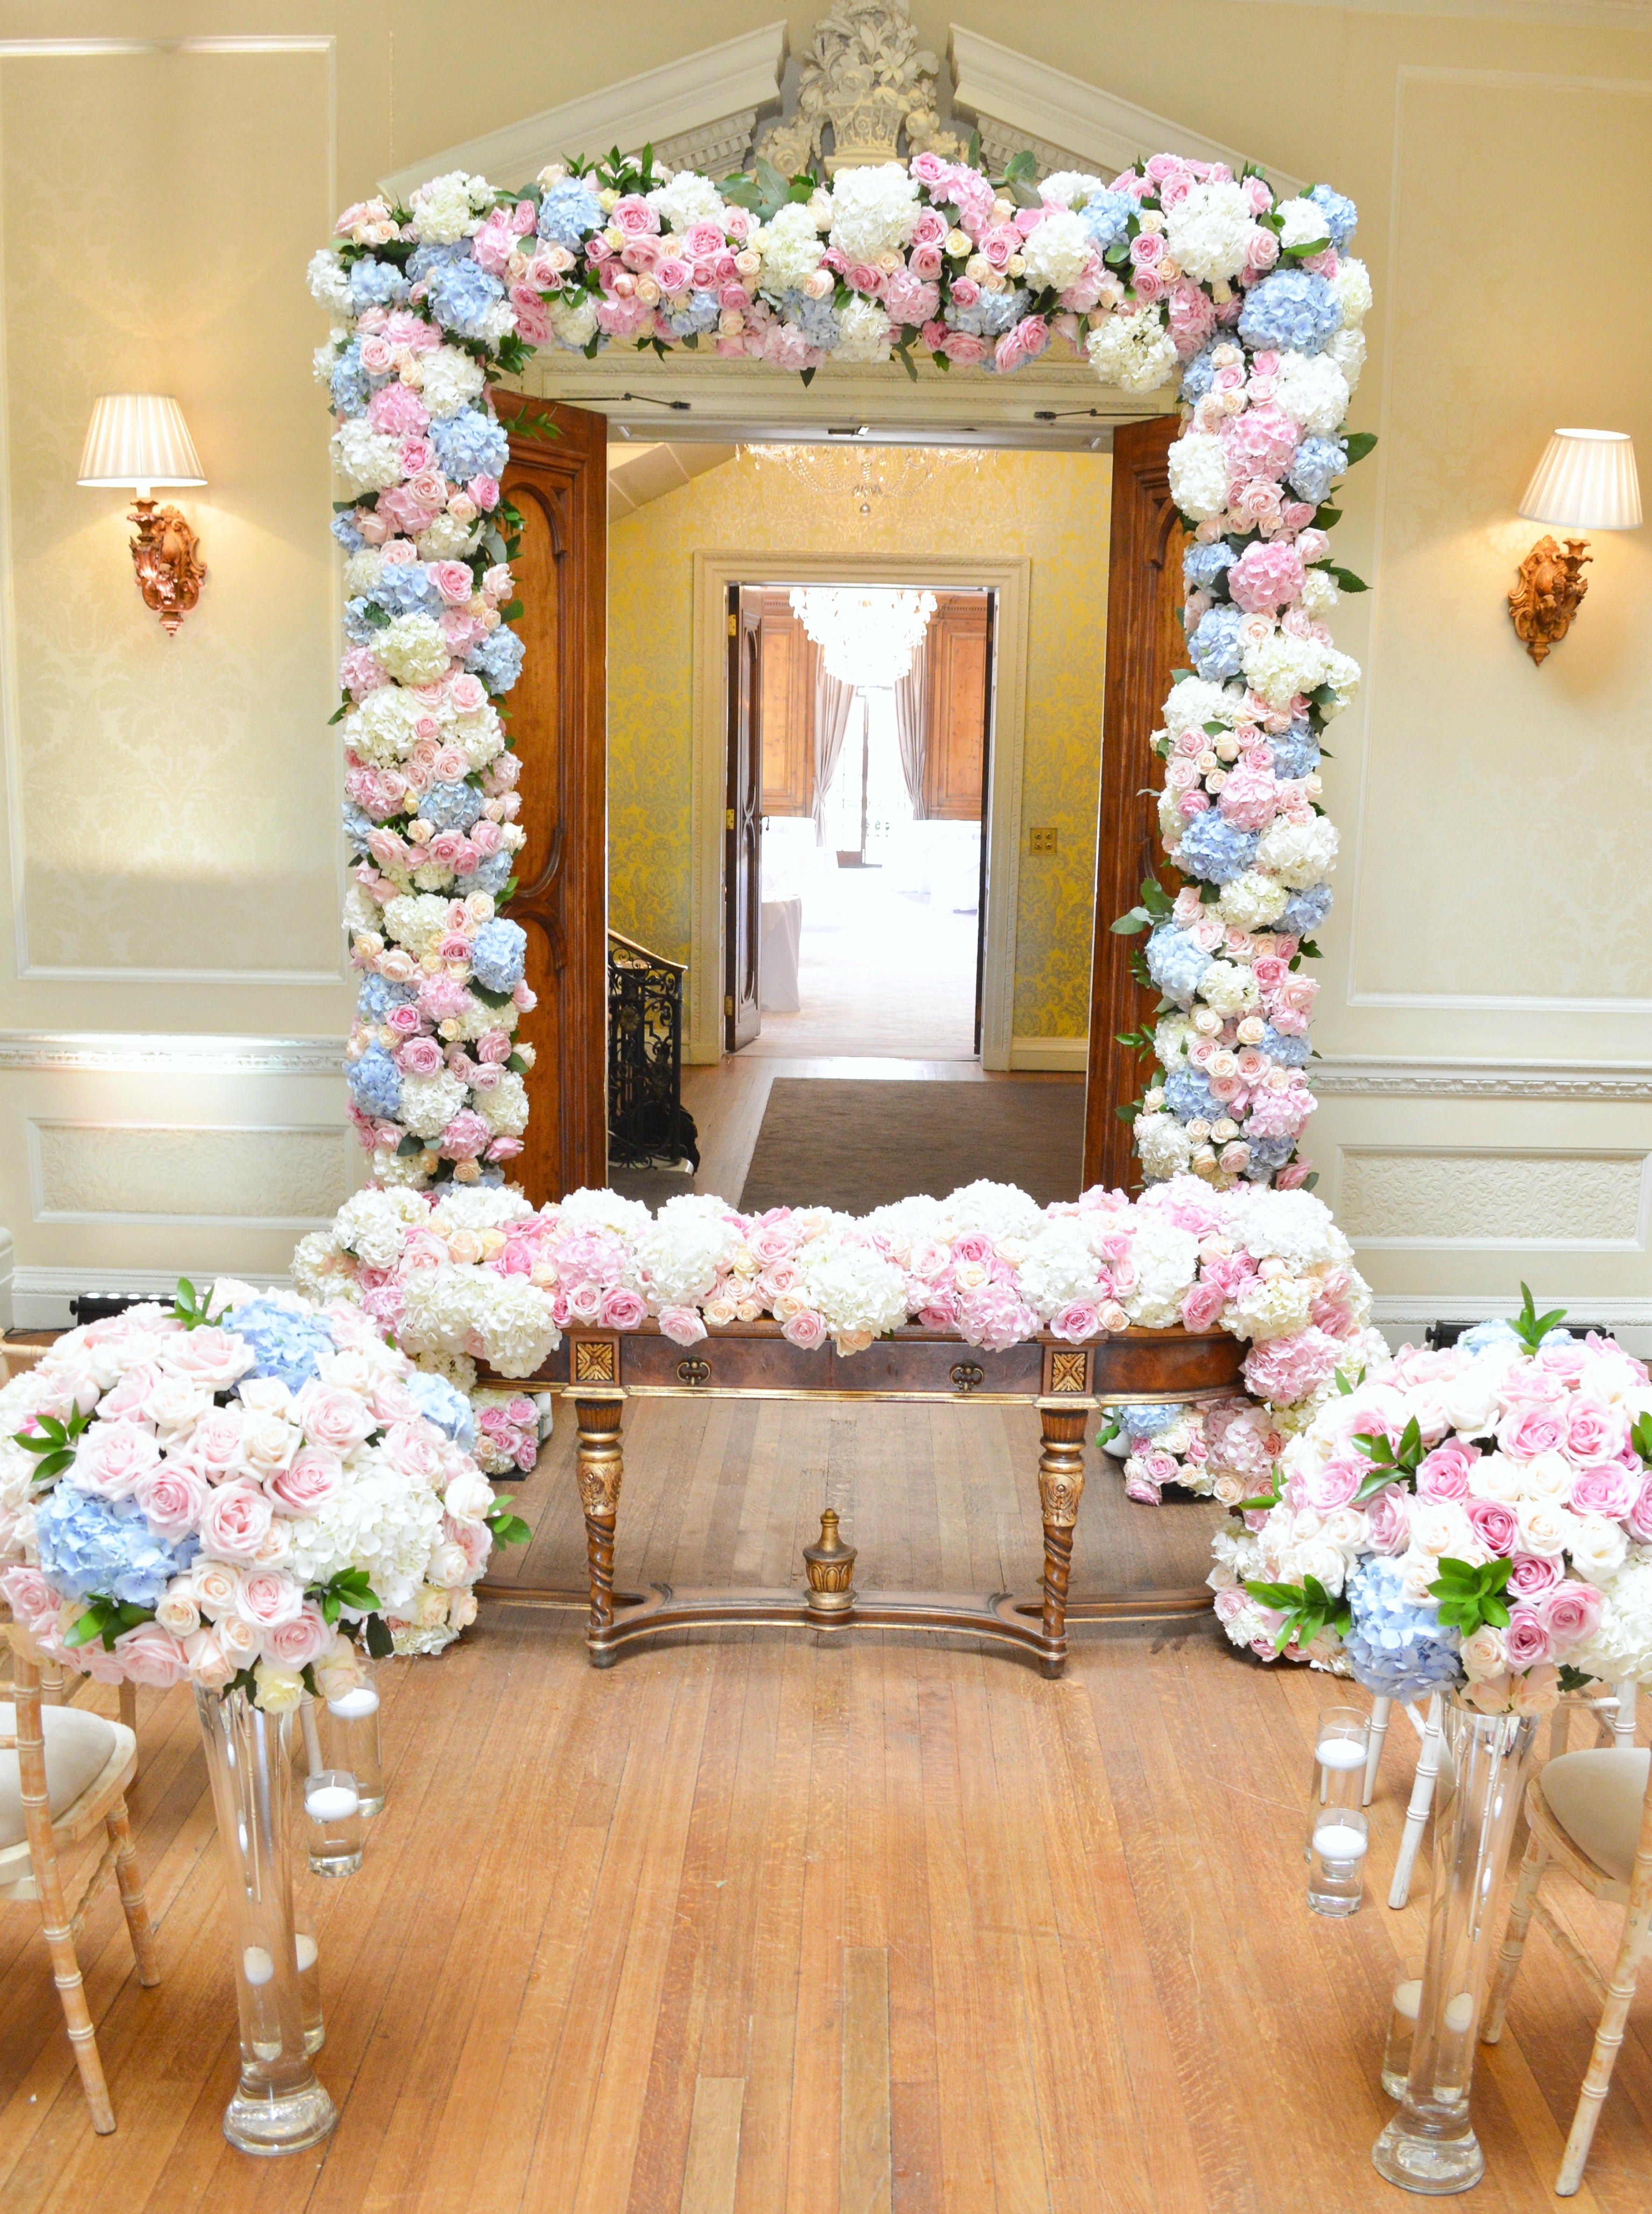 Dusty blue and pink wedding flowers arch registrar table head toptable floral garland wedding ceremony aisle Cherie Kelly cakes London Hedsor House